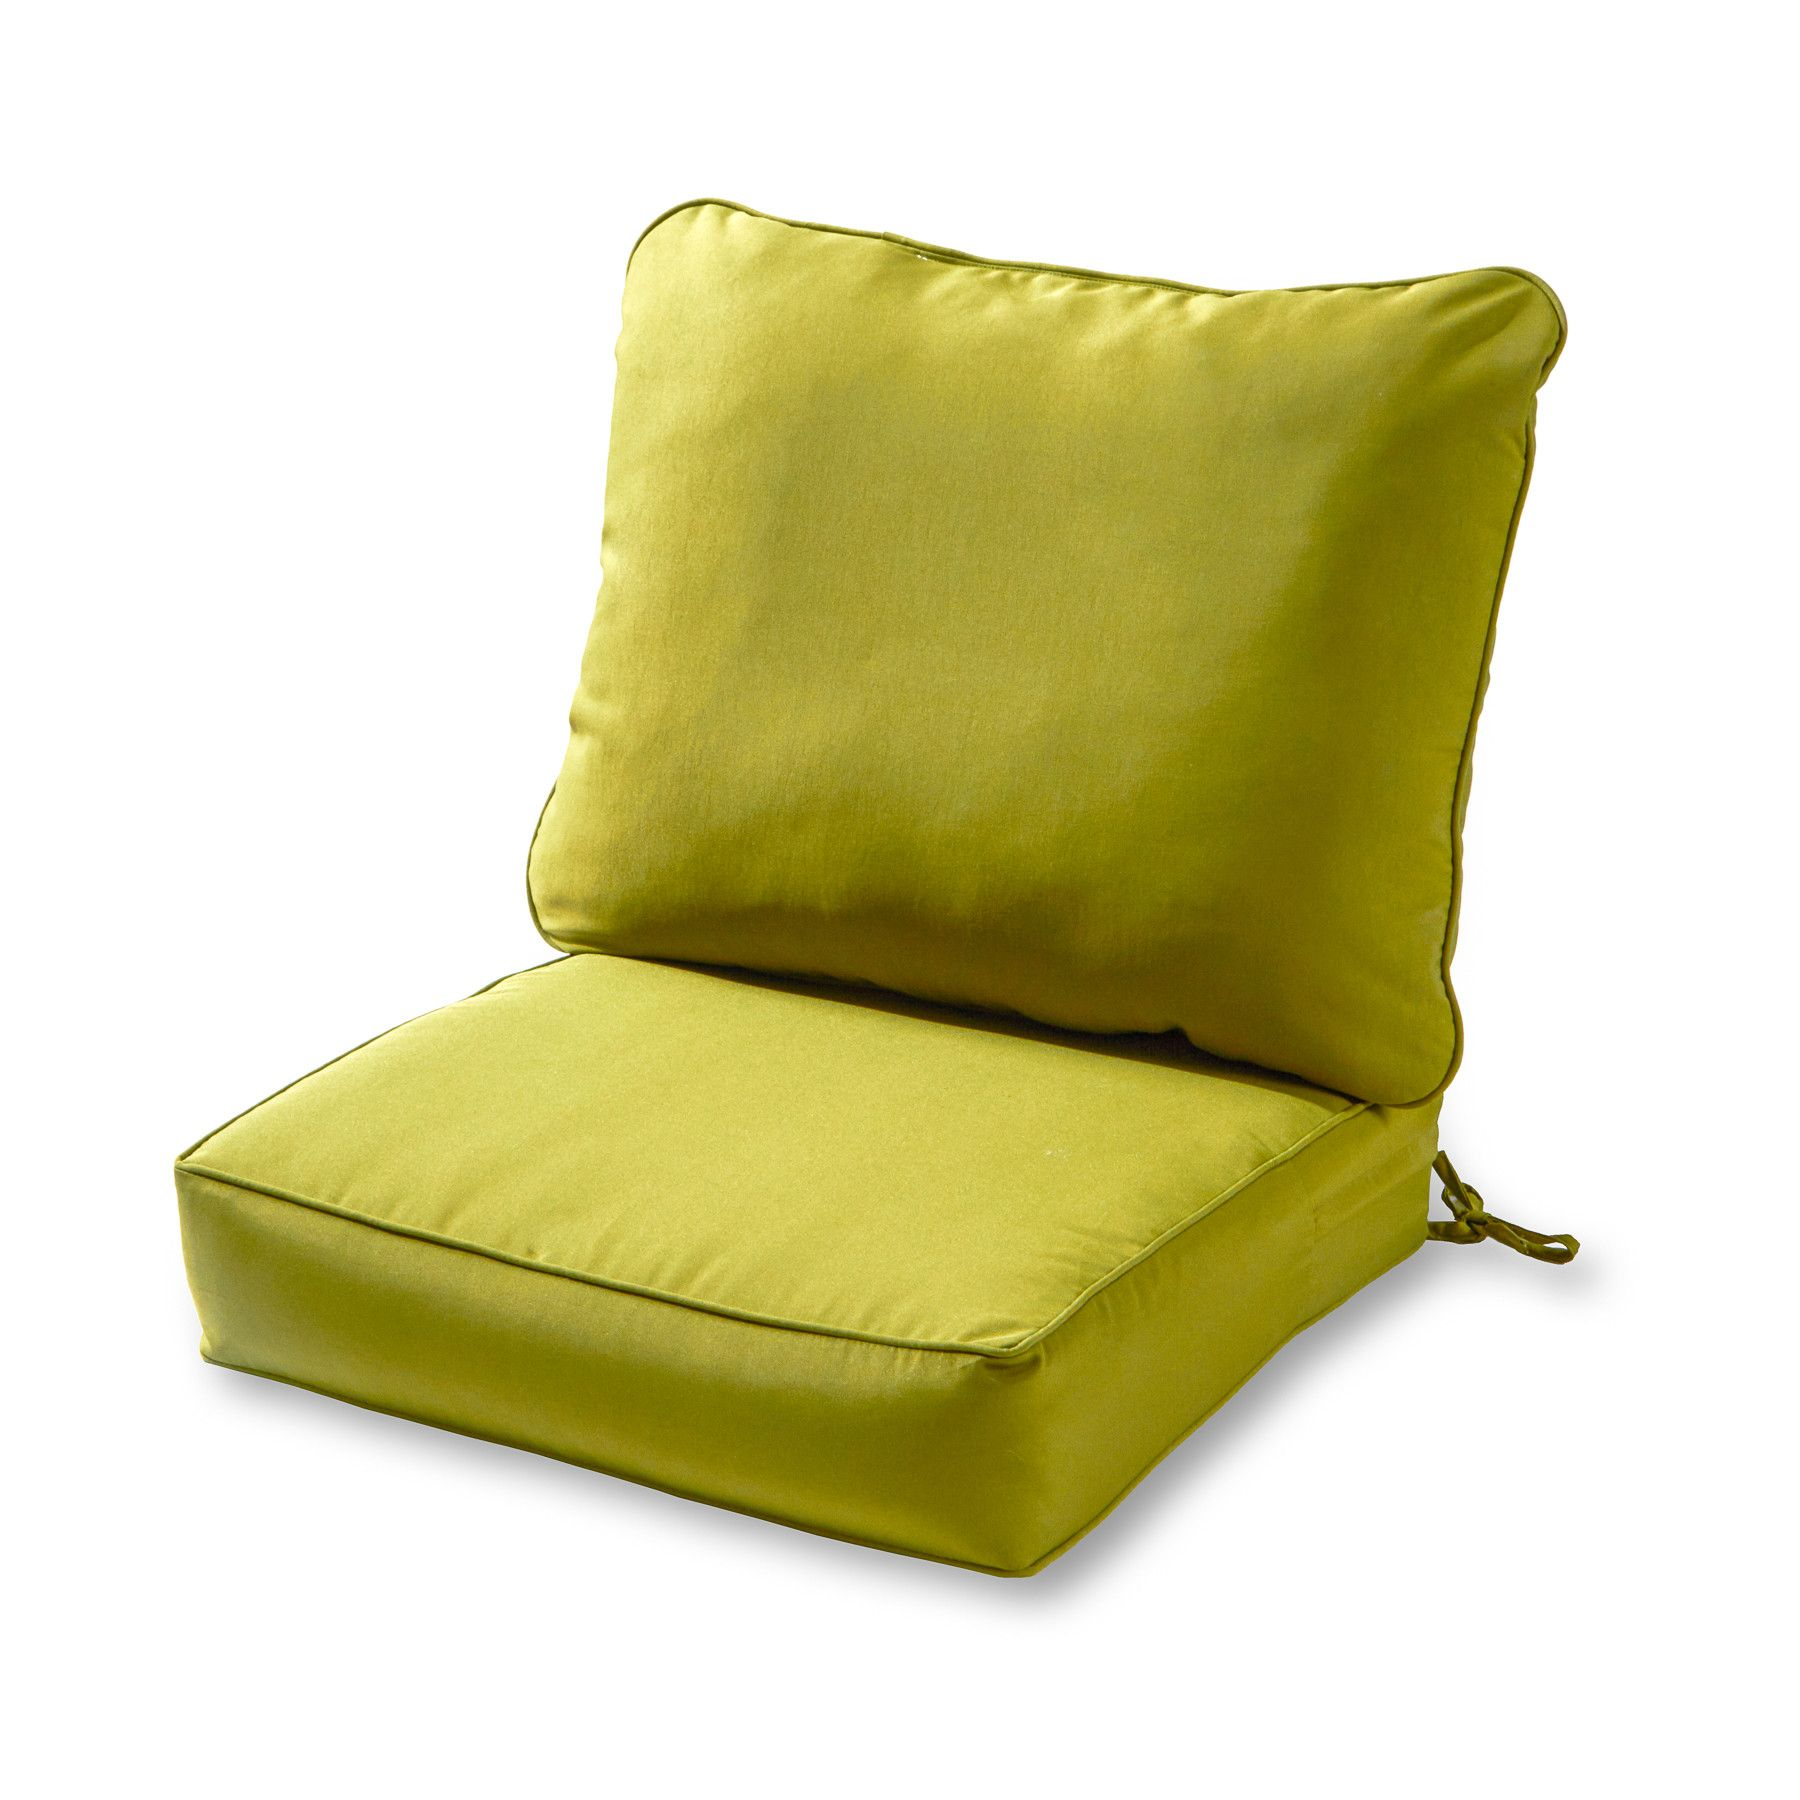 Outdoor lounge chair cushion chair cushions cushions and lounges